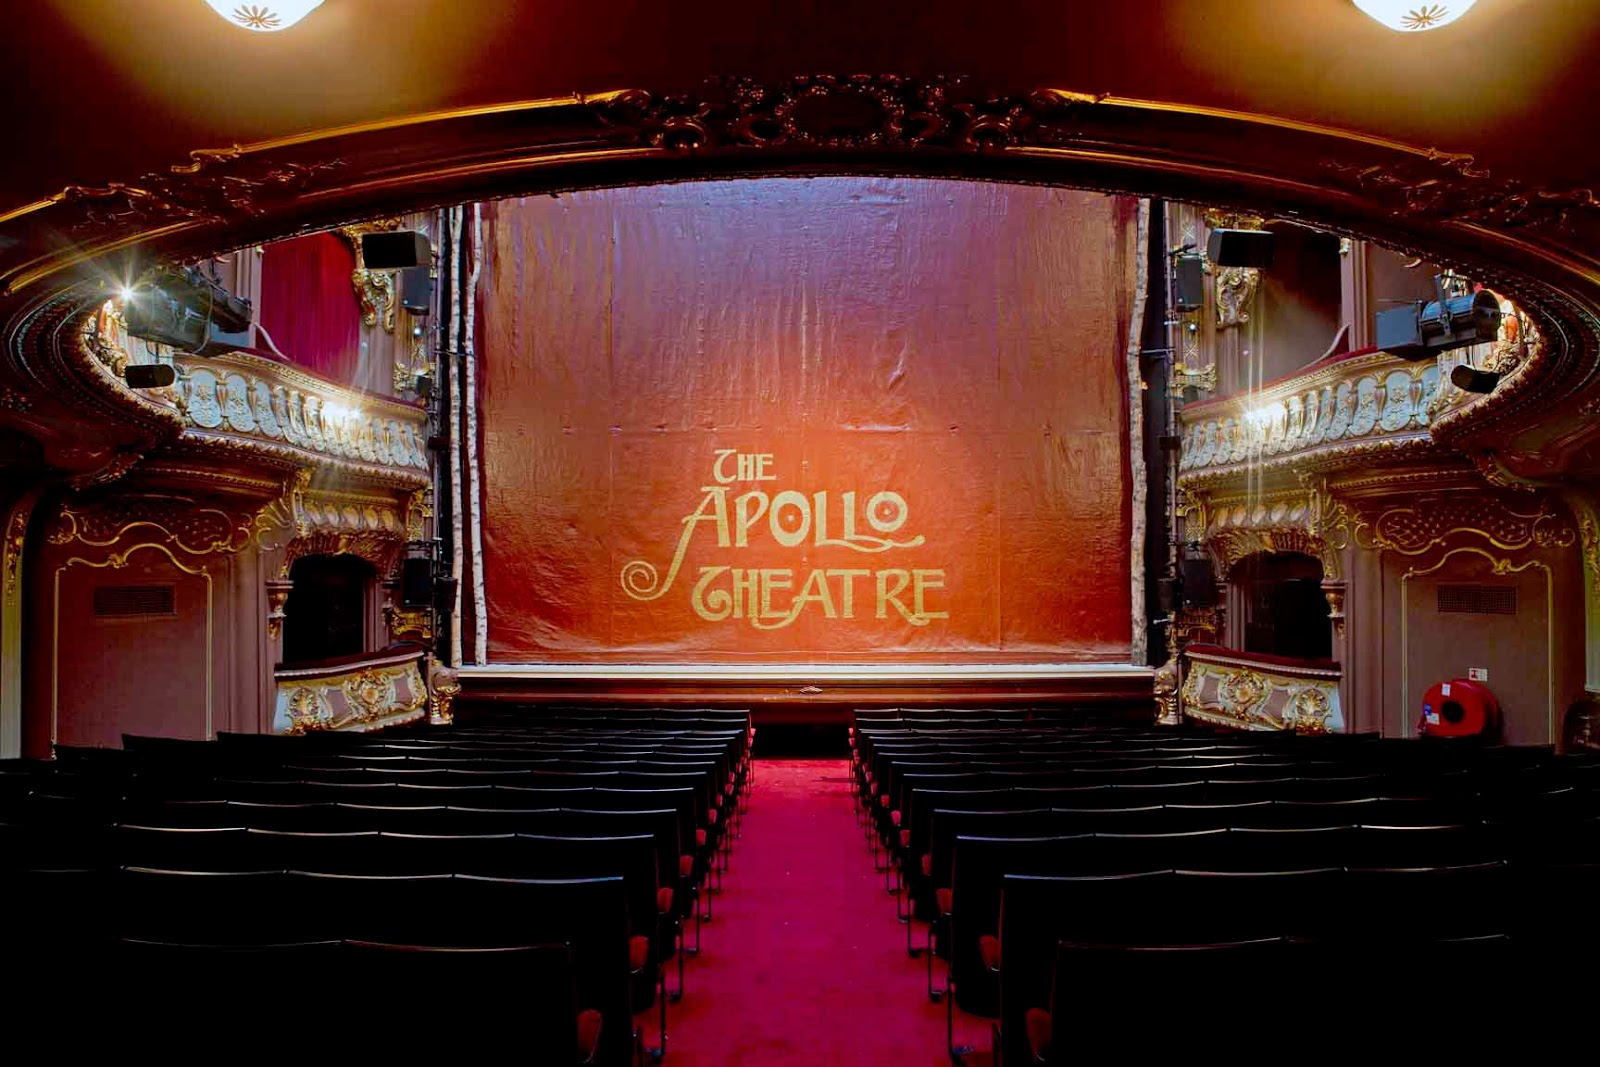 apollo theatre Buy apollo theater tickets at ticketmastercom find apollo theater venue concert and event schedules, venue information, directions, and seating charts.